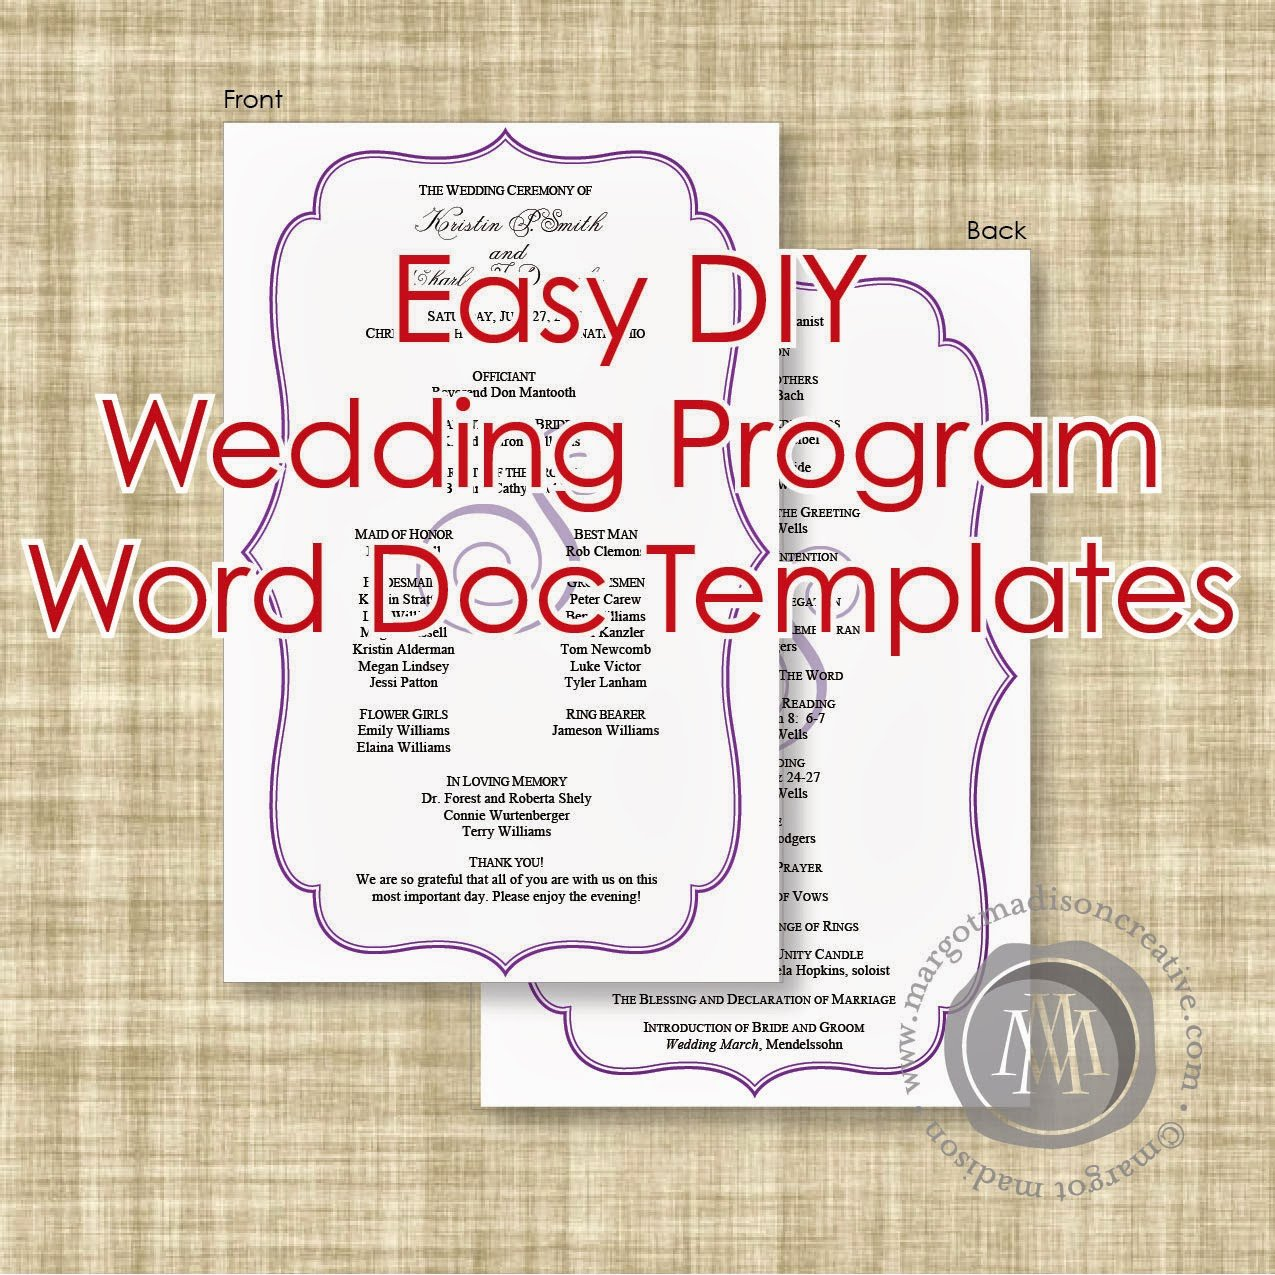 Wedding Program Template Free Word Awesome Margotmadison Diy Wedding Program Word Doc Templates now